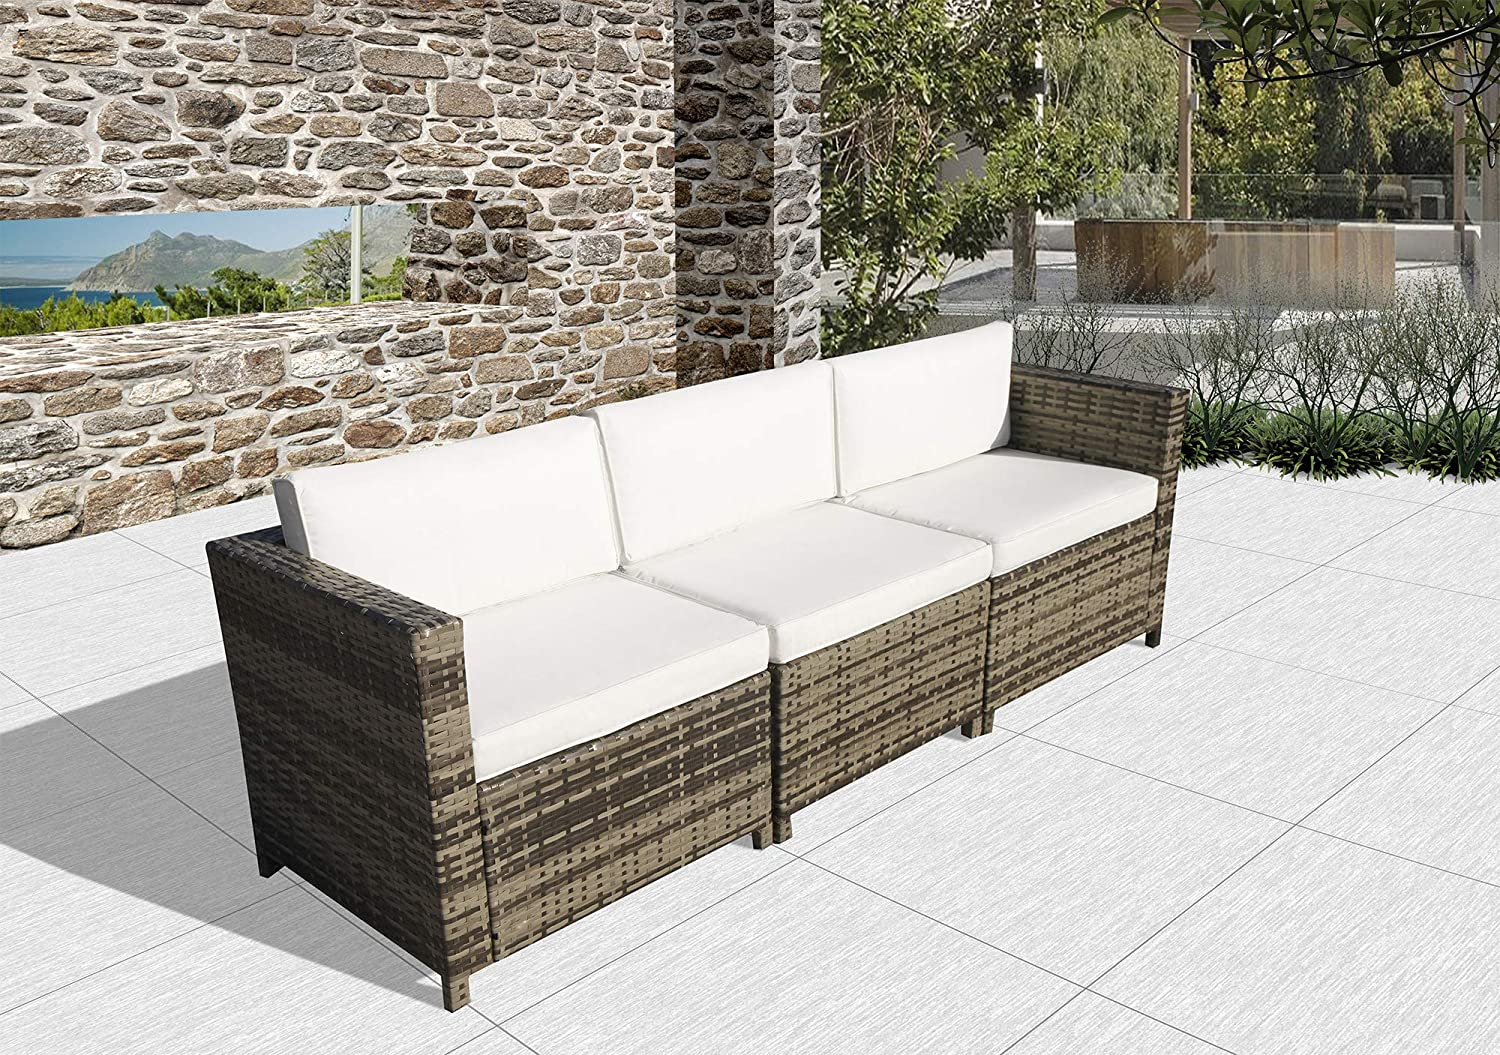 SUNVIVI OUTDOOR All Weather Outdoor 3-Seater Patio Sofa with Cushions in a PE Grey Wicker, 2 Corner Sofas and 1 Armless Sofa with White Cushions